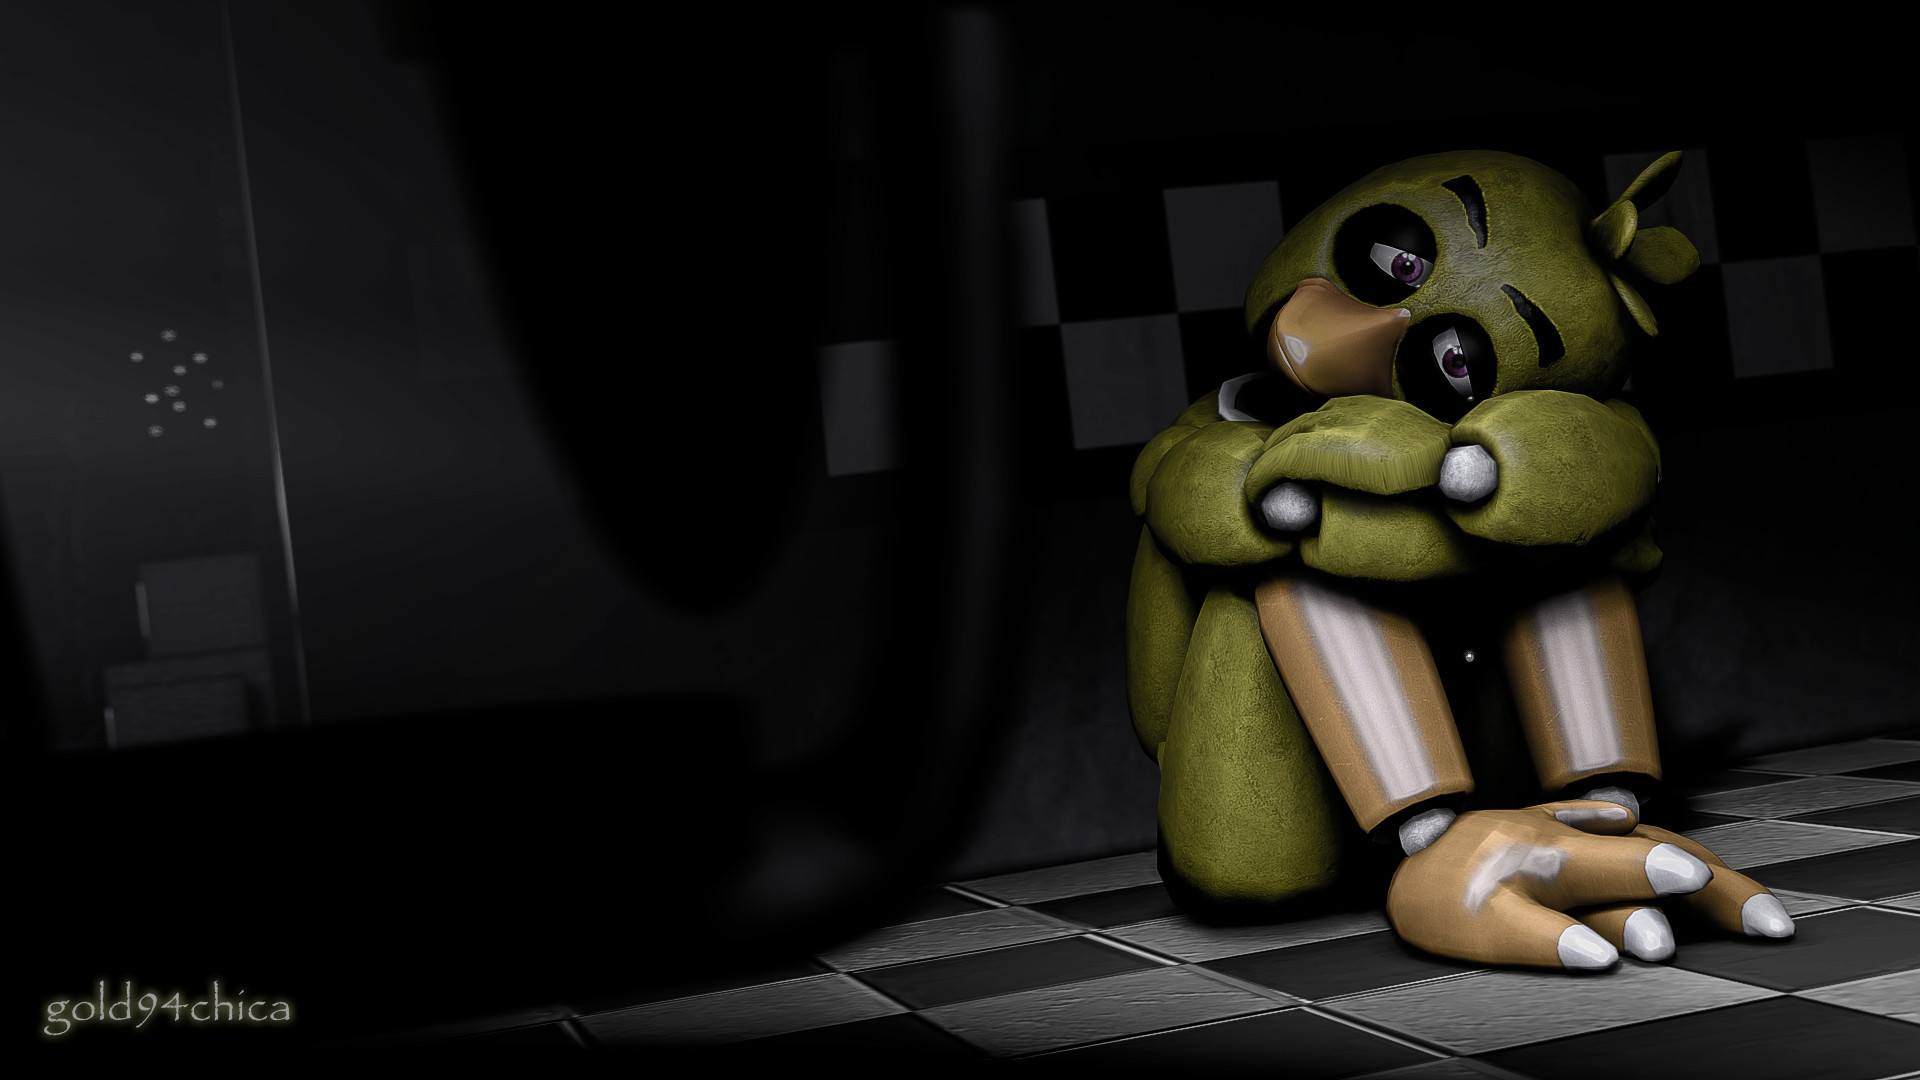 1920x1080 File: Fnaf HD Widescreen.jpg | Albertha Keegan |